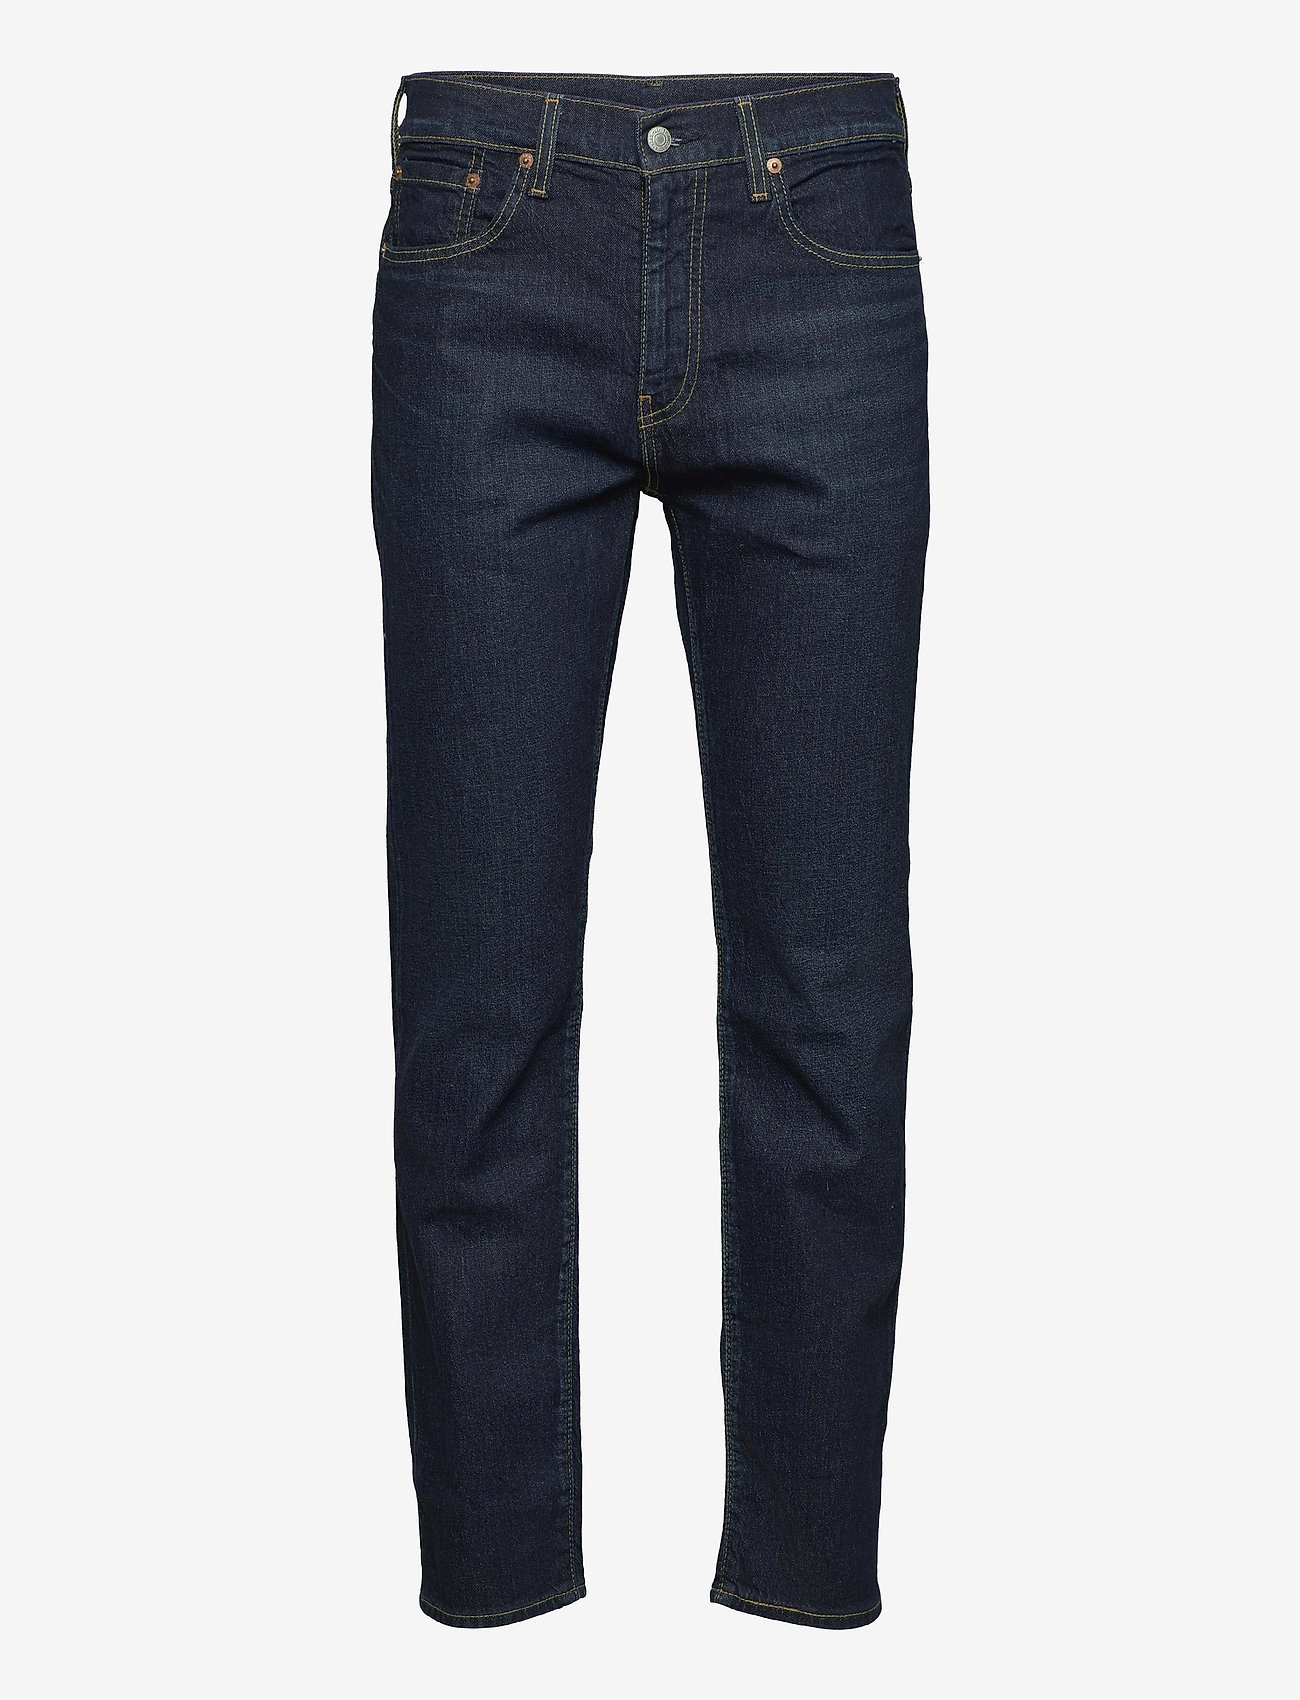 LEVI´S Men - 502 TAPER FEELIN RIGHT - regular jeans - med indigo - worn in - 0